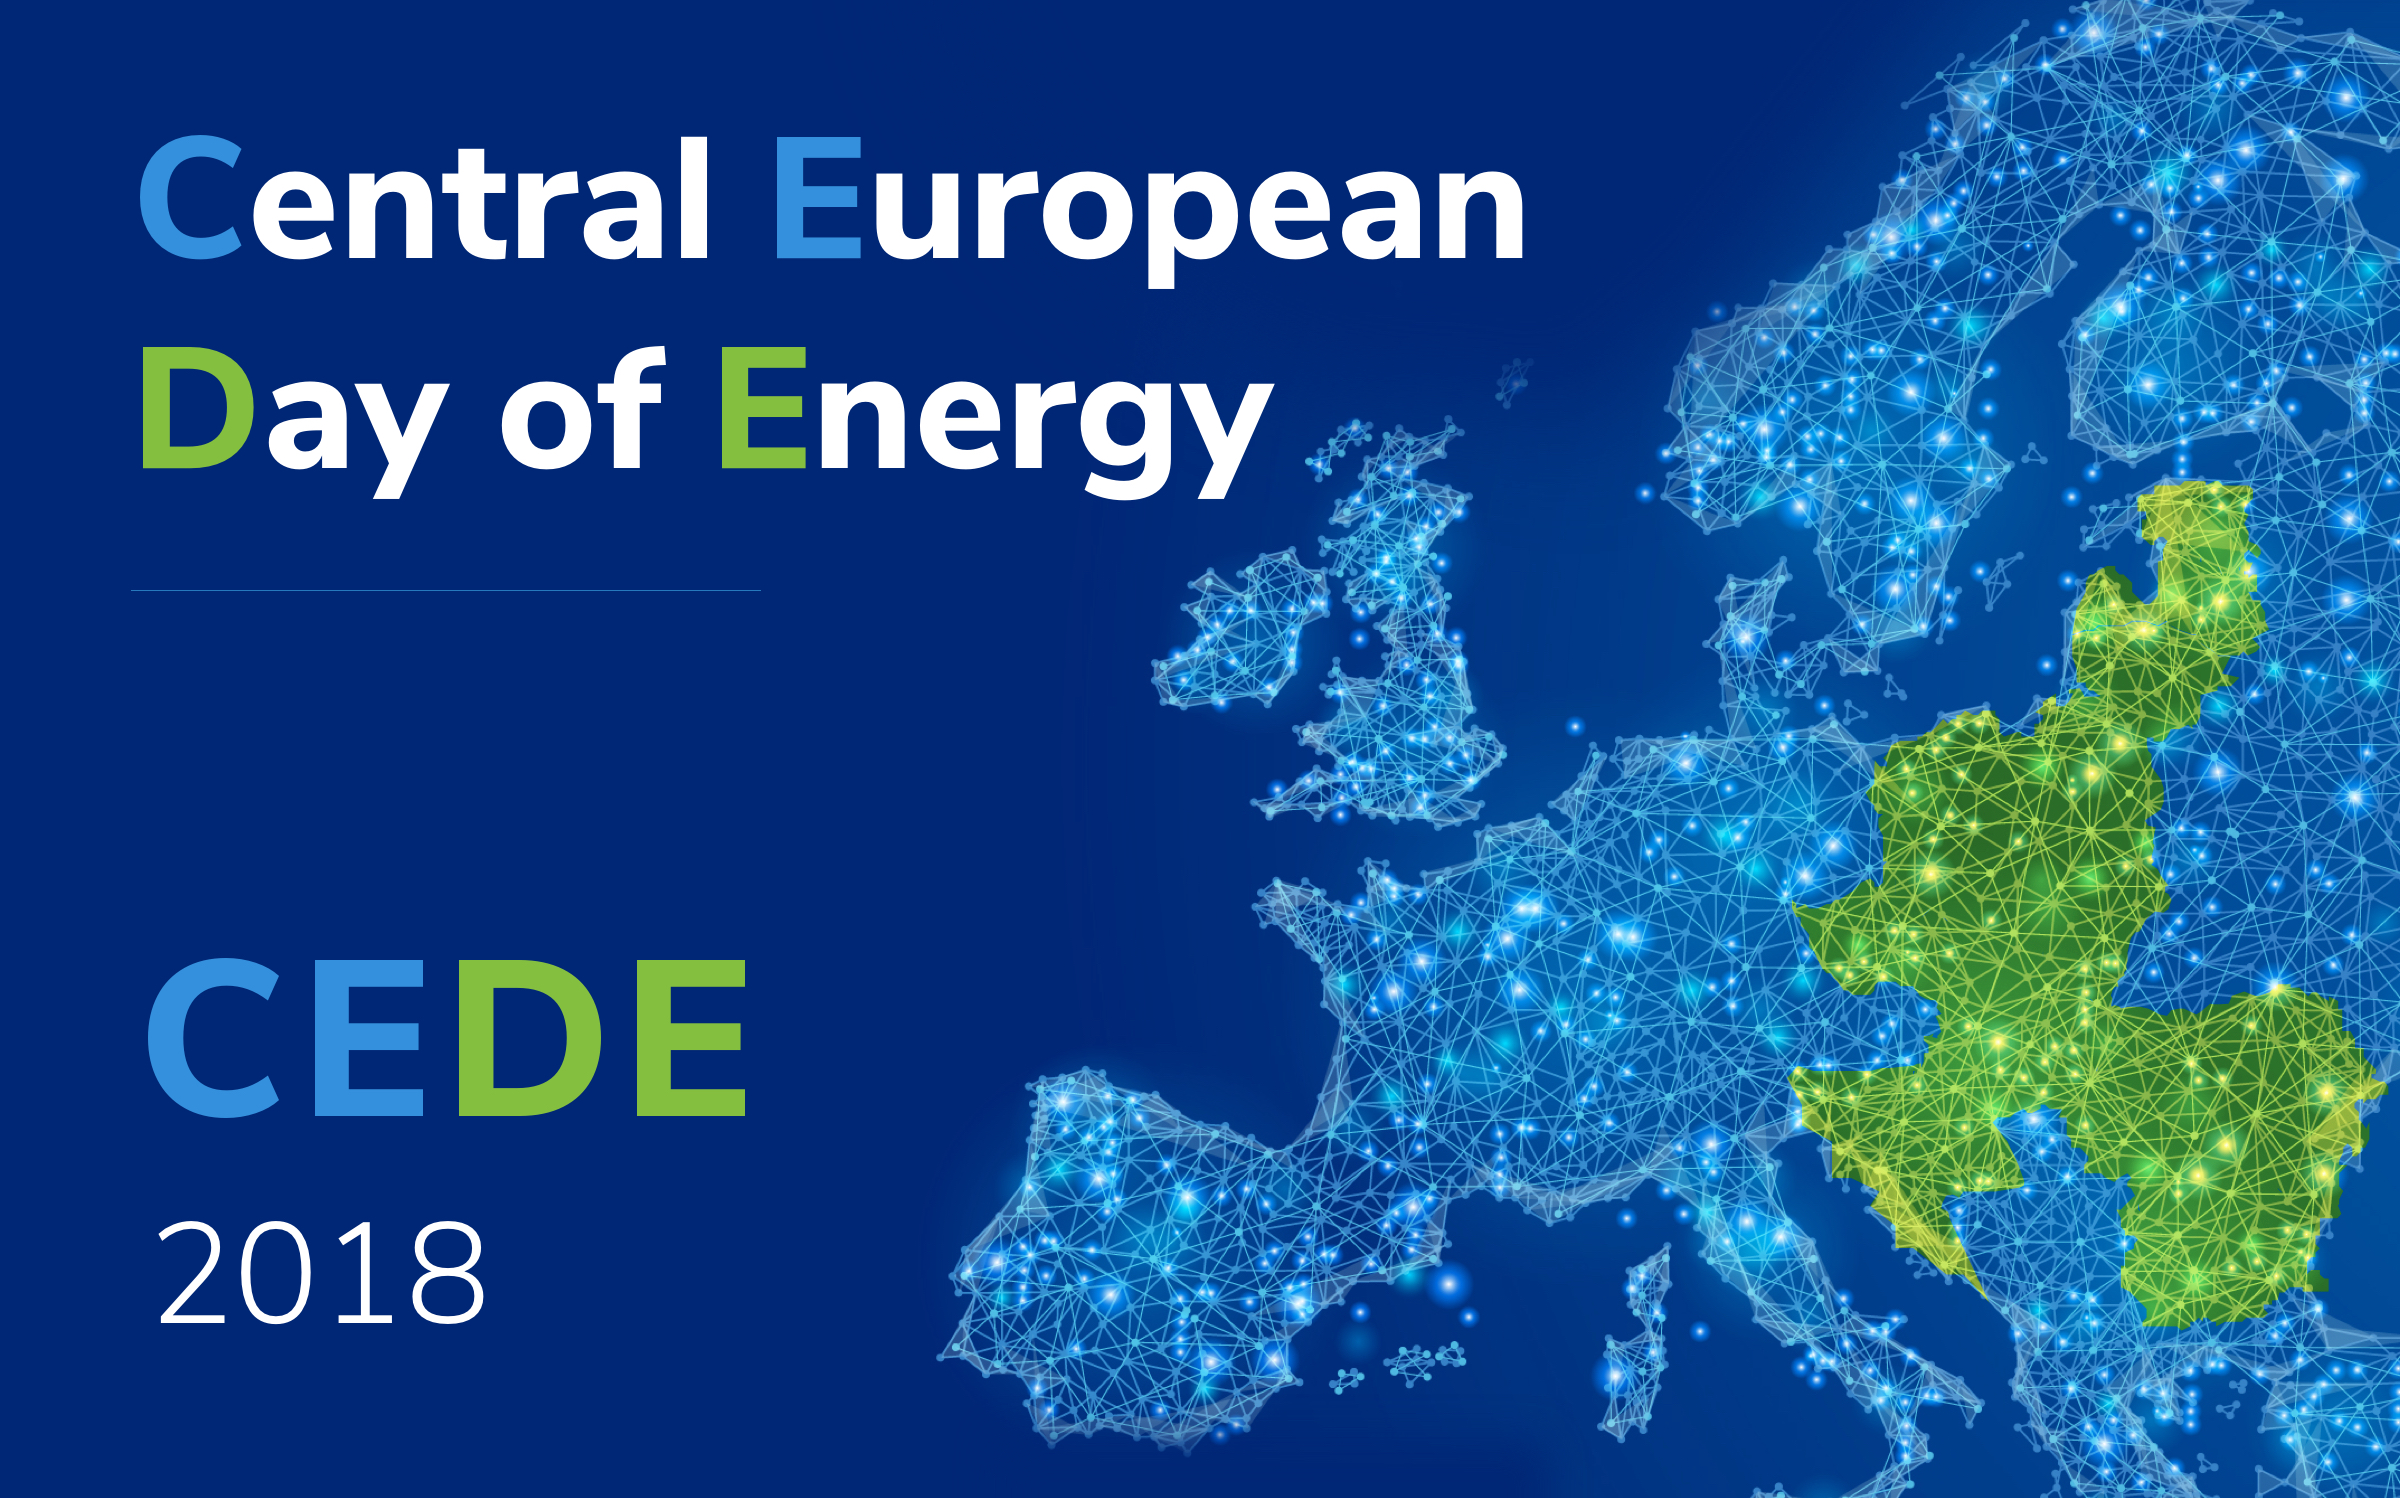 Central European Day of Energy